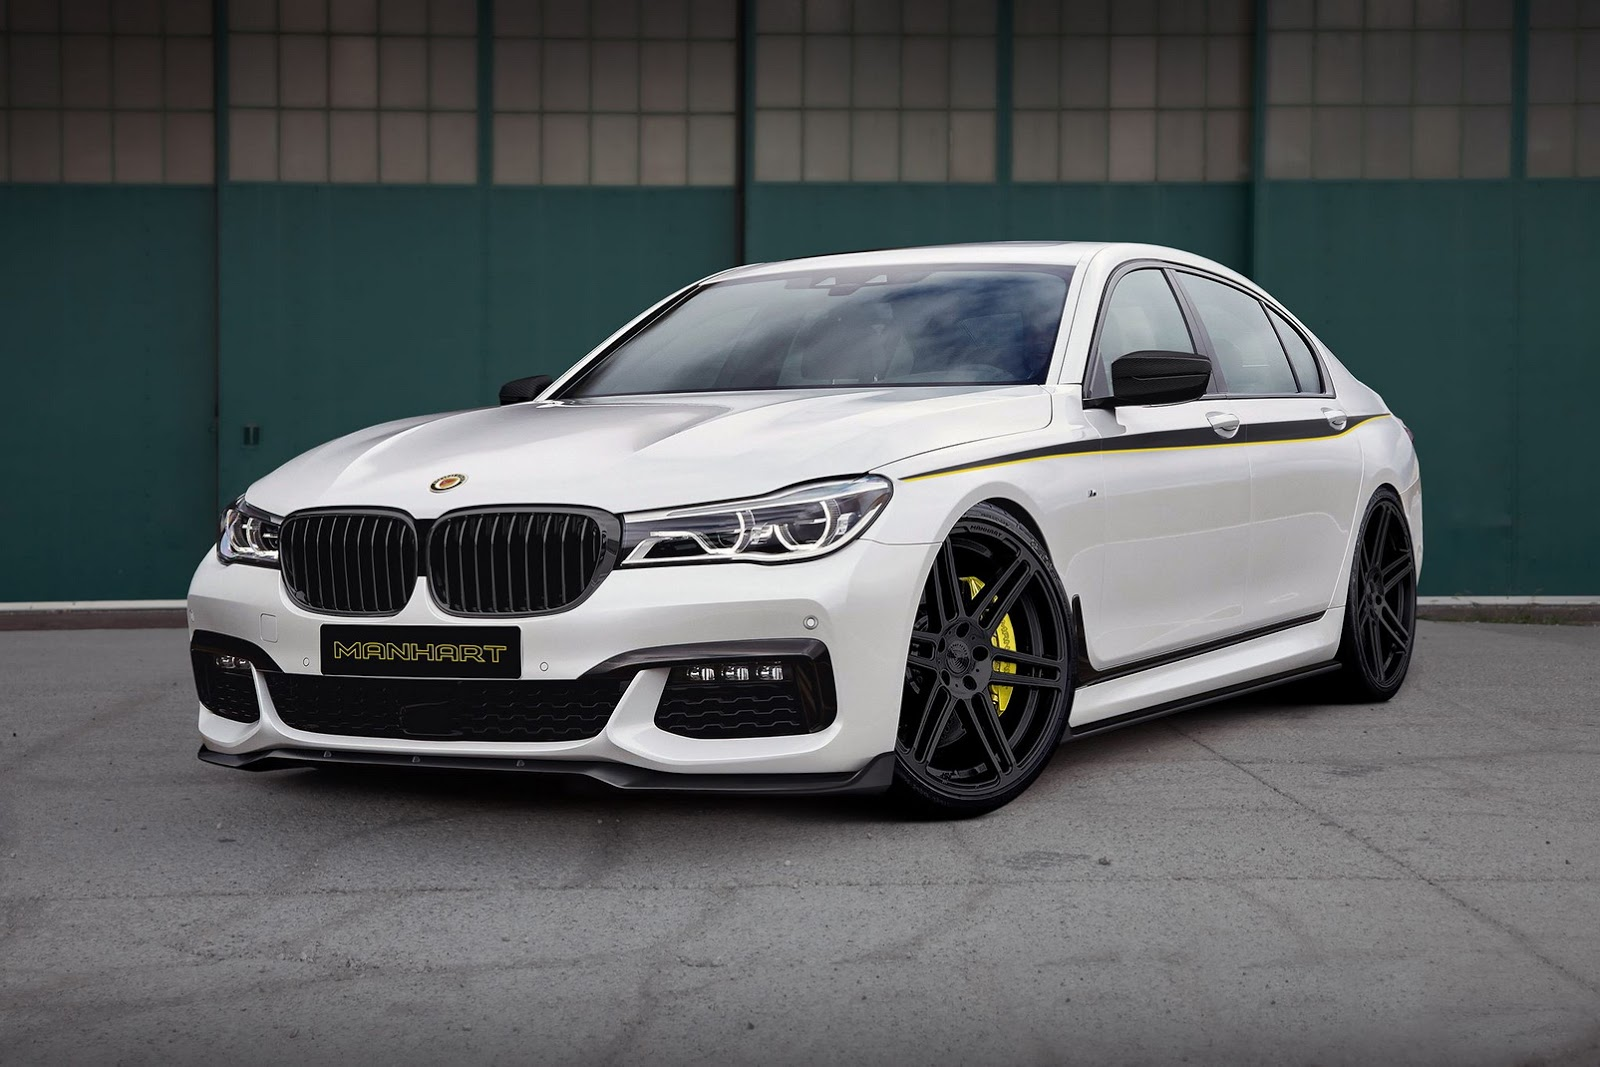 BMW 7-Series 2016 MH7 700 tuning / тюнинг Manhart